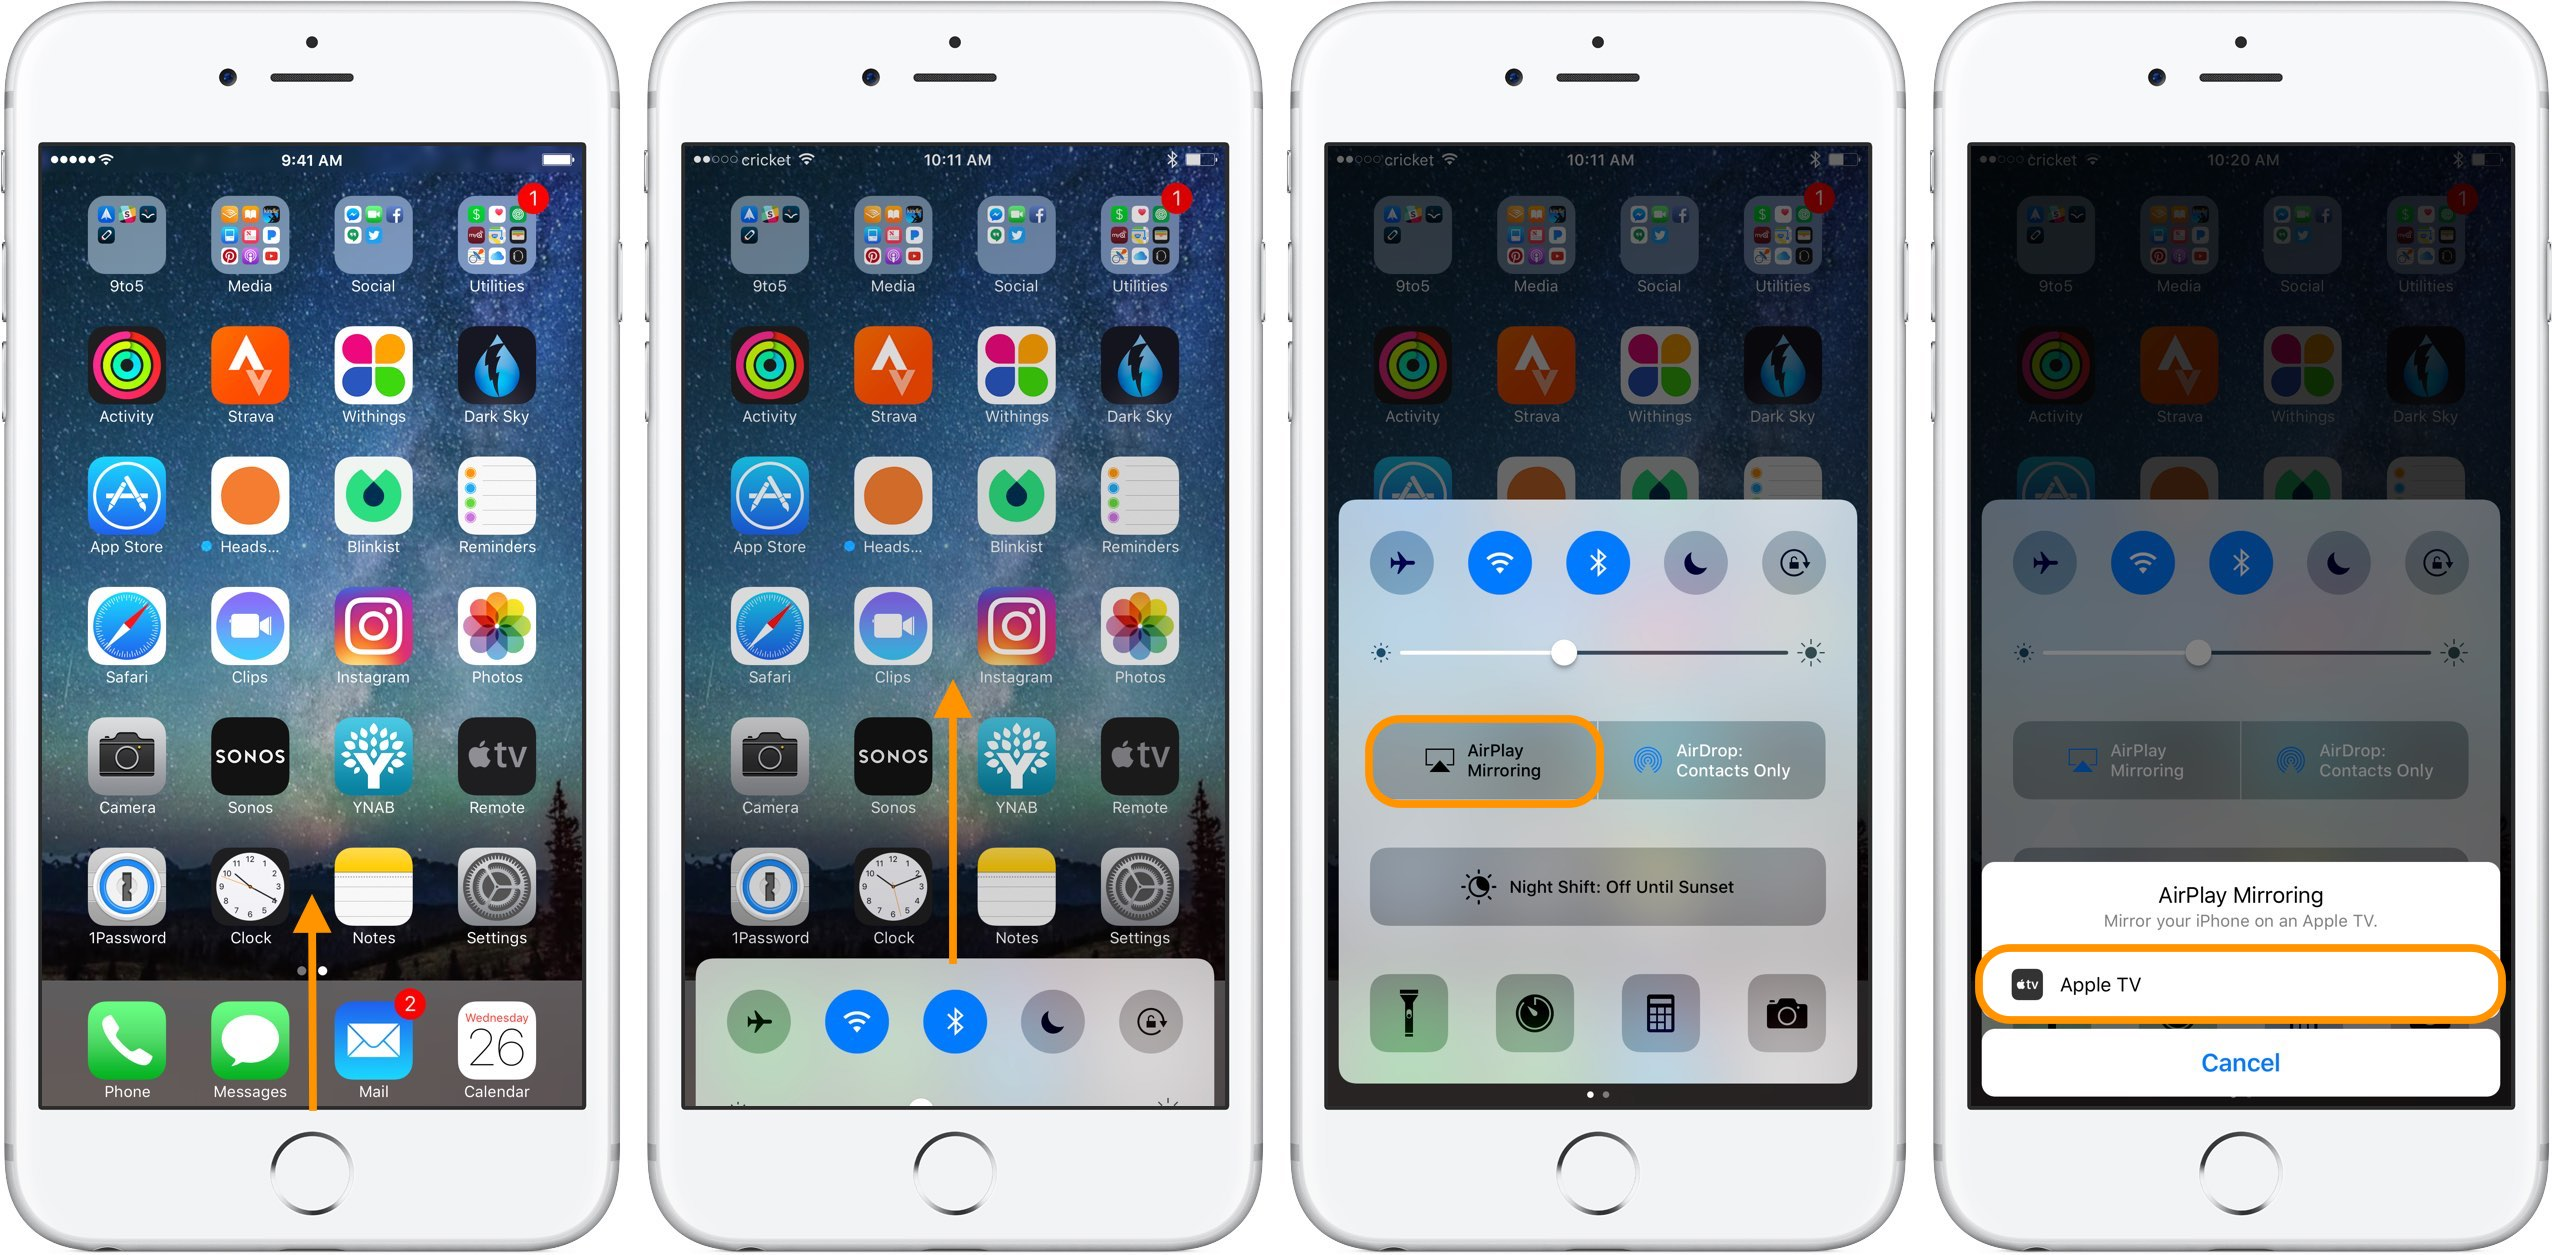 Image showing how to enable mirroring from iPhone or iPad to a TV with AirPlay